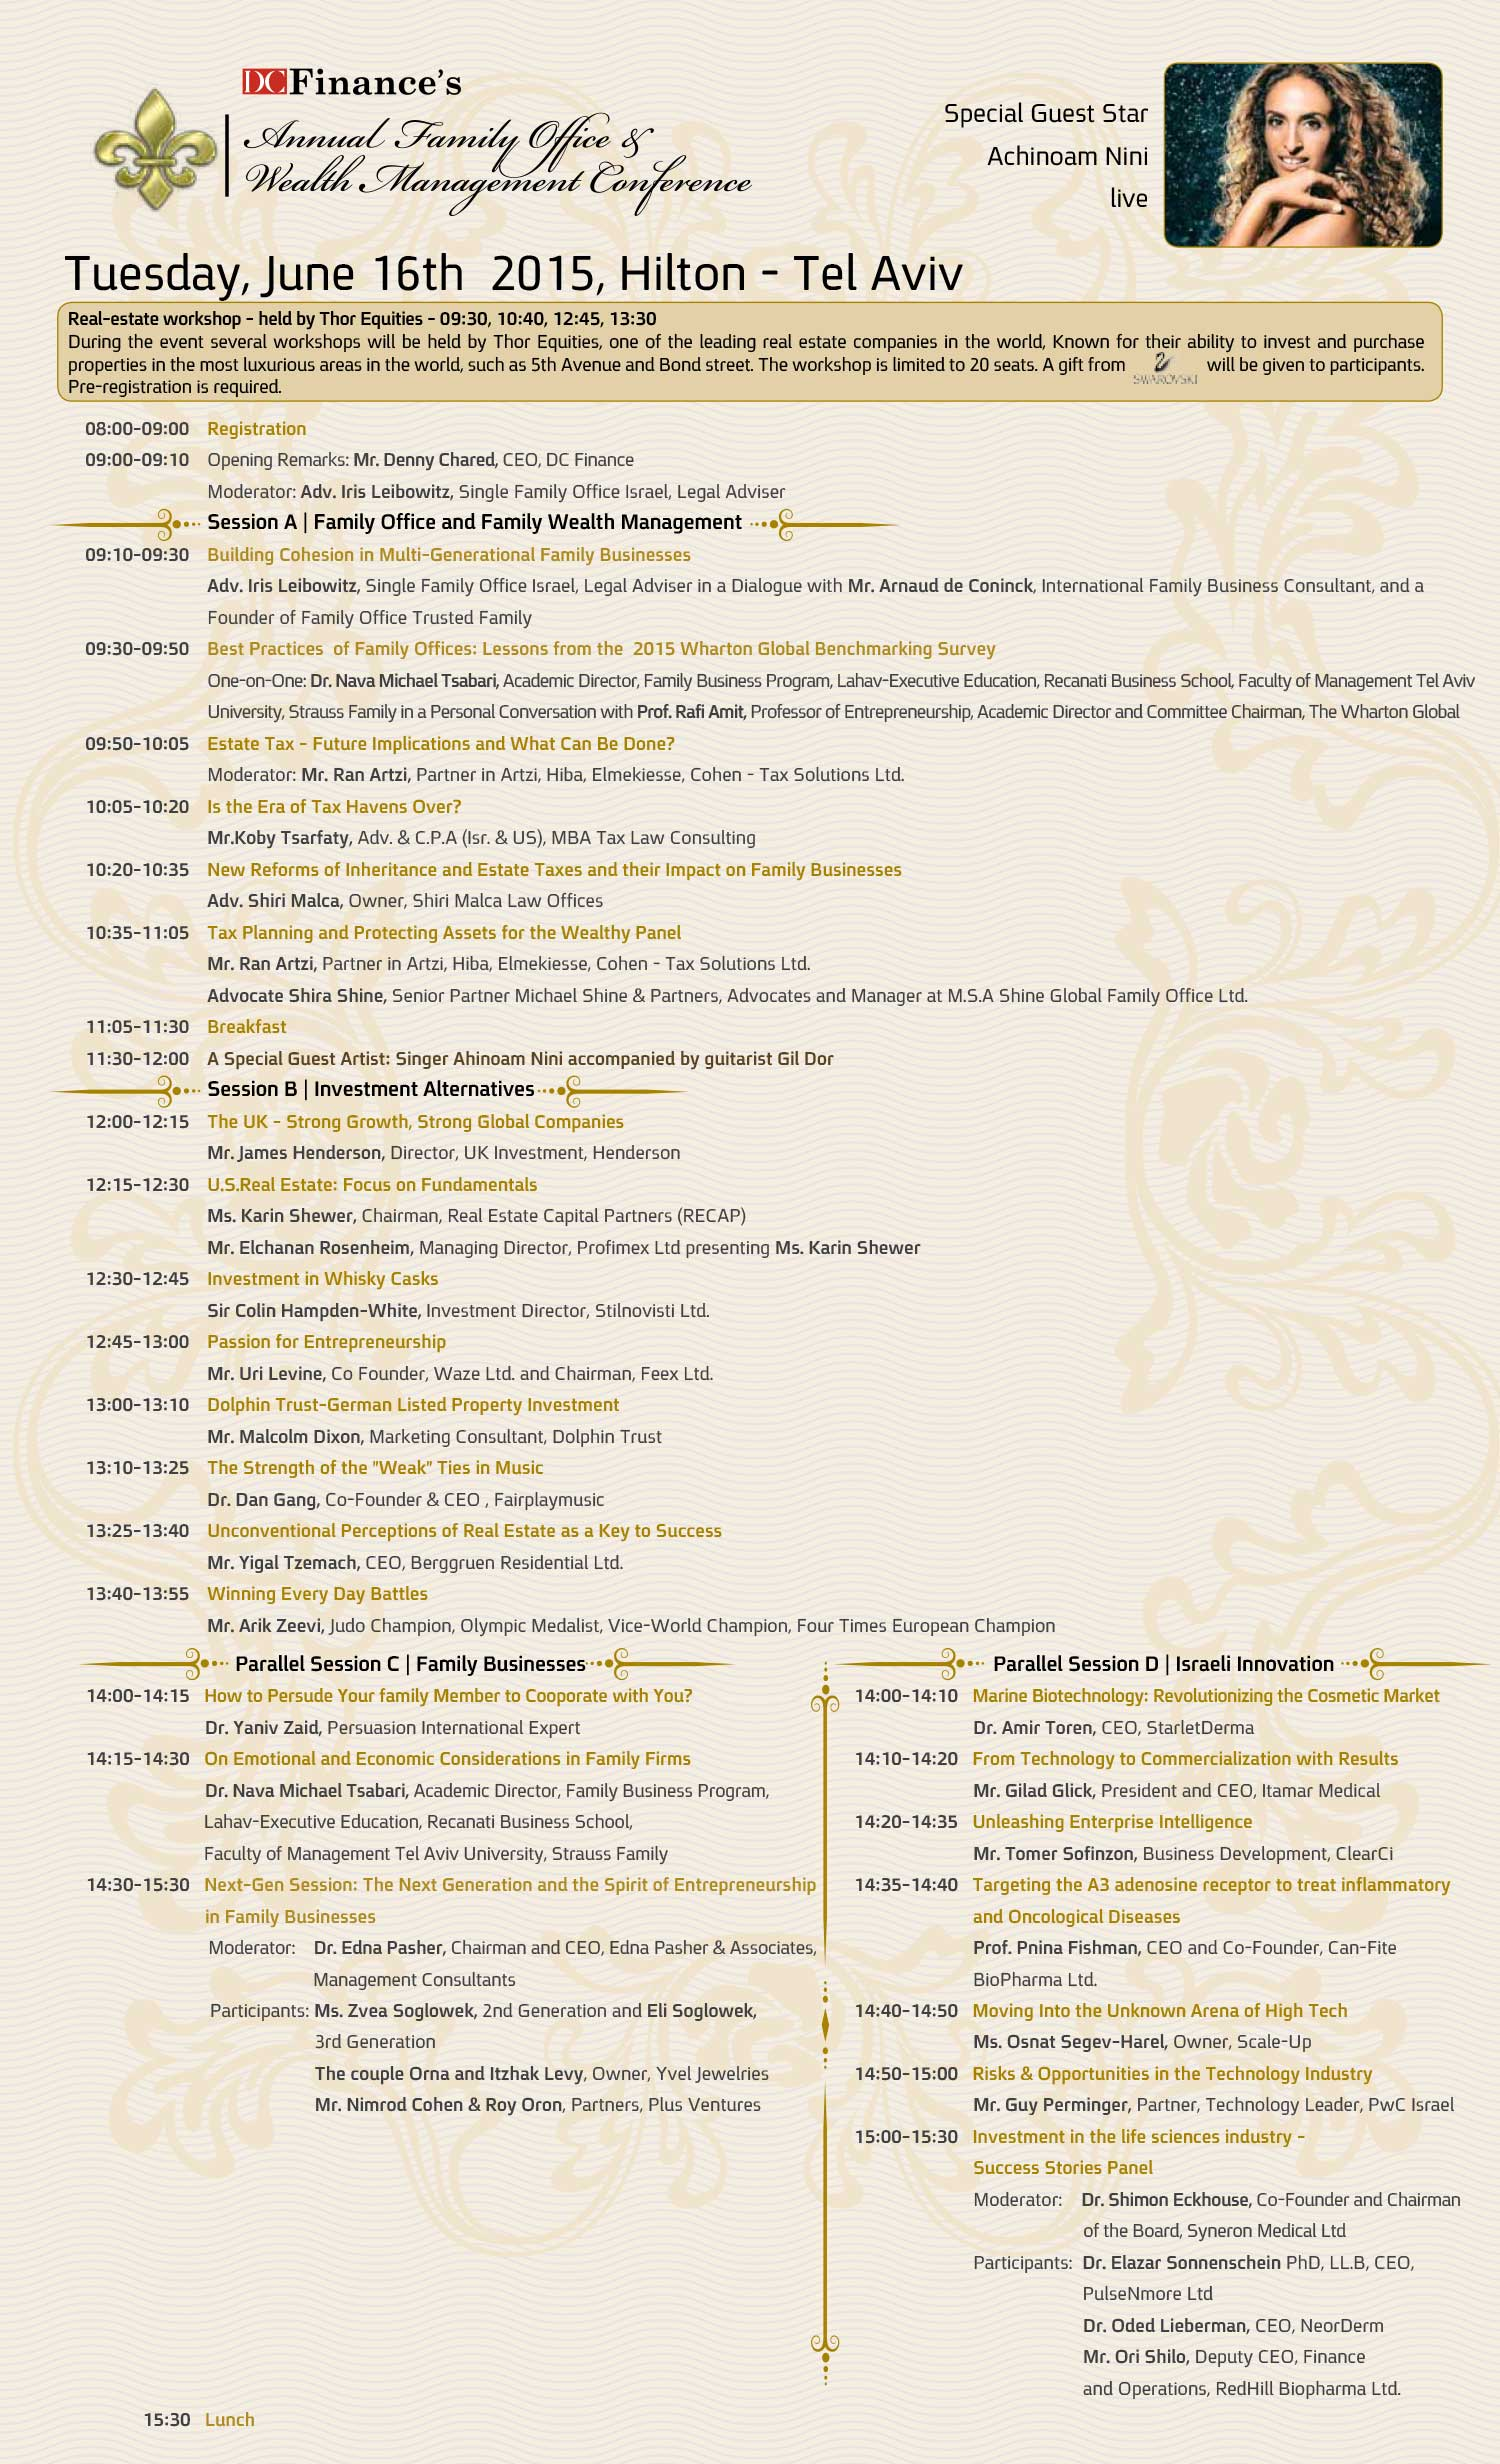 The 2015 Family Office & Wealth Management Conference